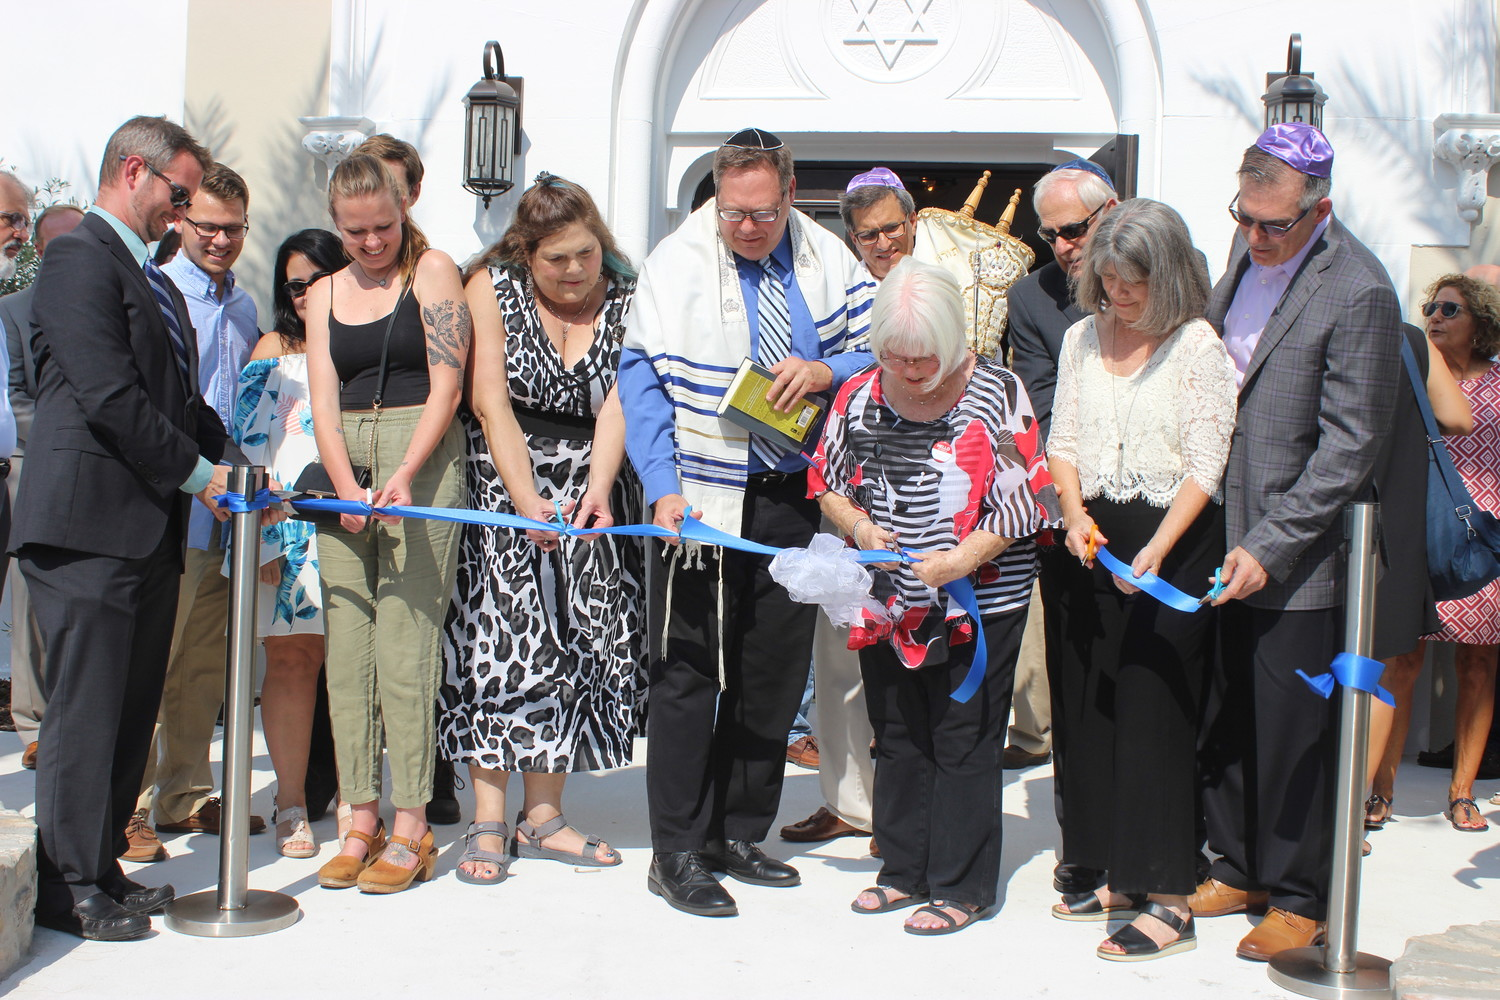 Members of First Congregation Sons of Israel in St. Augustine participate in a ribbon cutting ceremony on Aug. 24 in celebration of the reopening of its sanctuary after 22 months of repairs following Hurricanes Matthew and Irma.